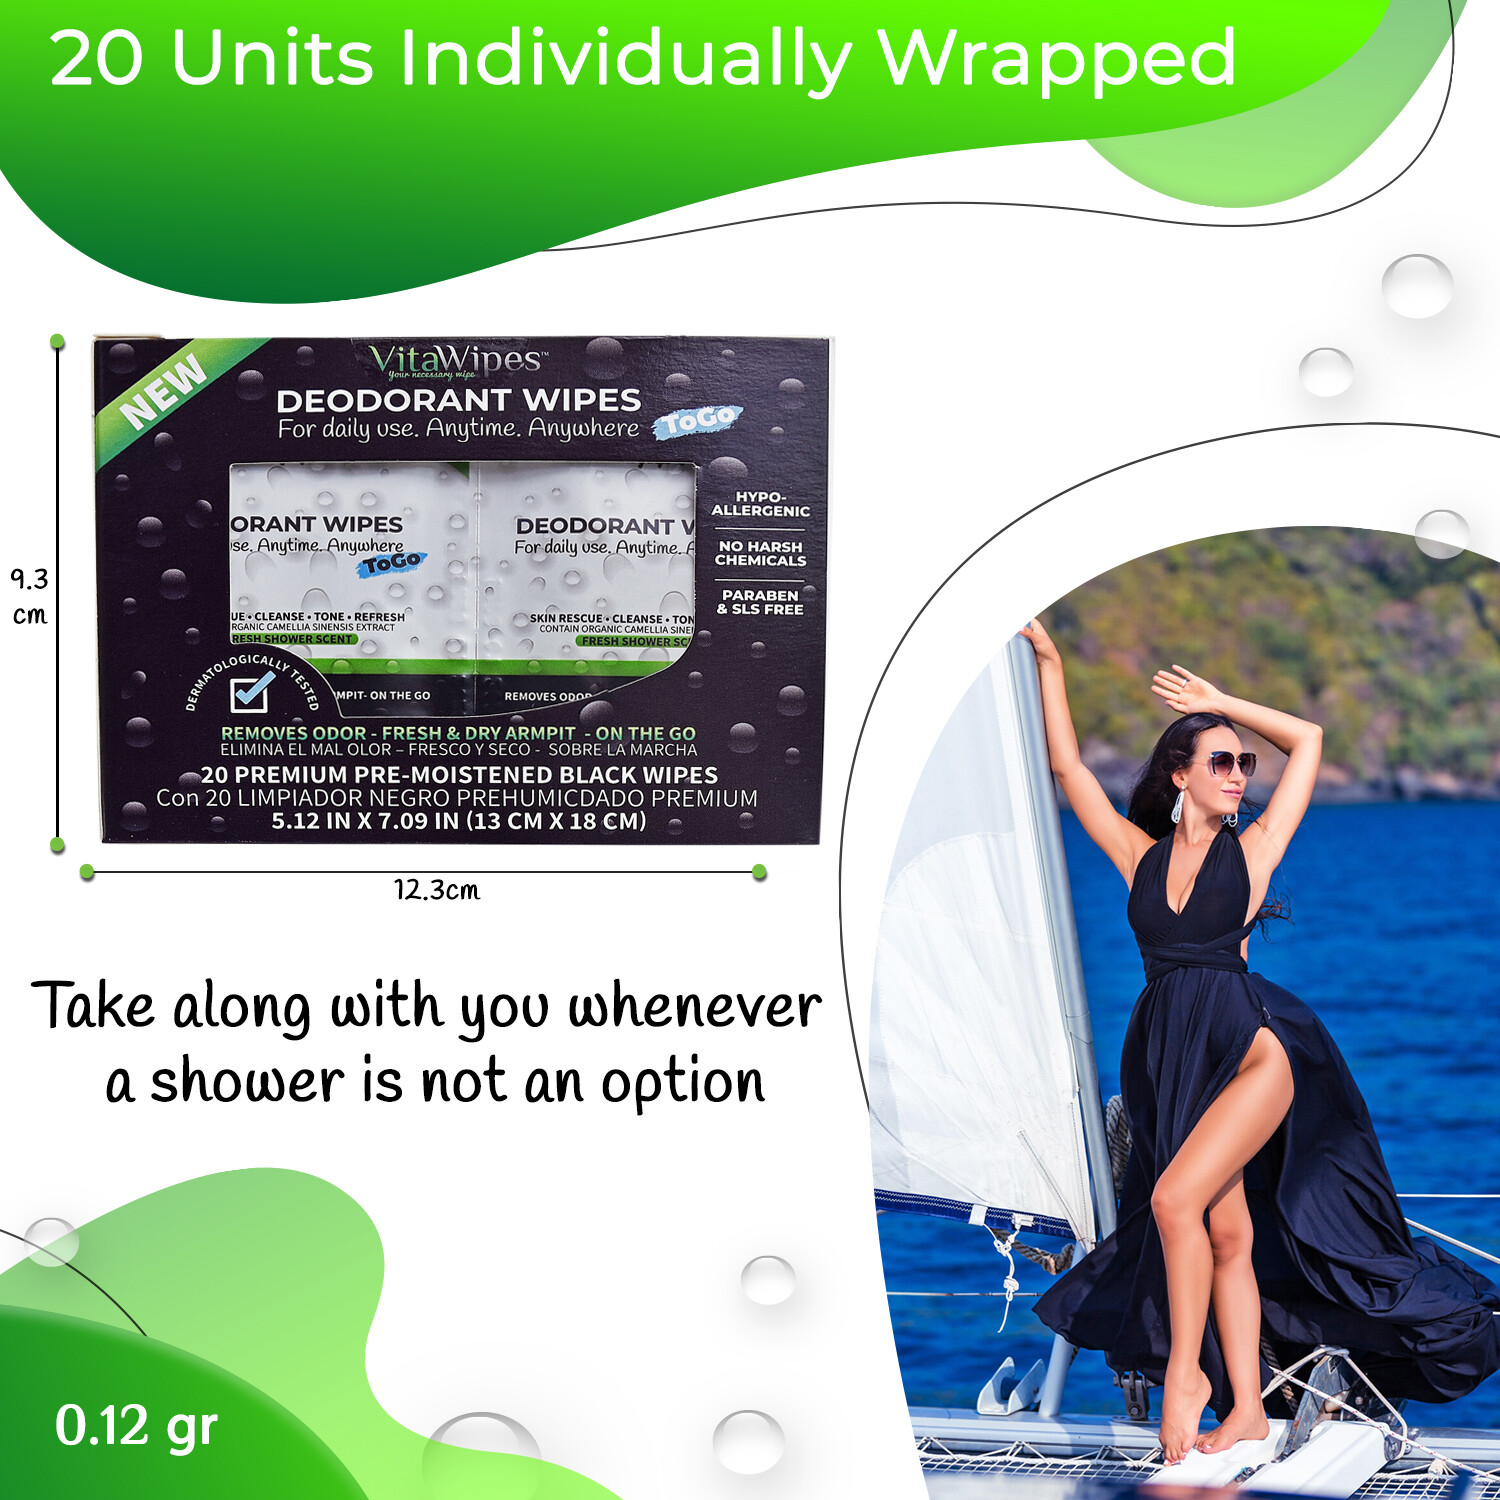 VitaWipes Deodorant Wipes ToGo - 10 Boxes With 20 Sheets individually wrapped in each box (200 sheets Total)